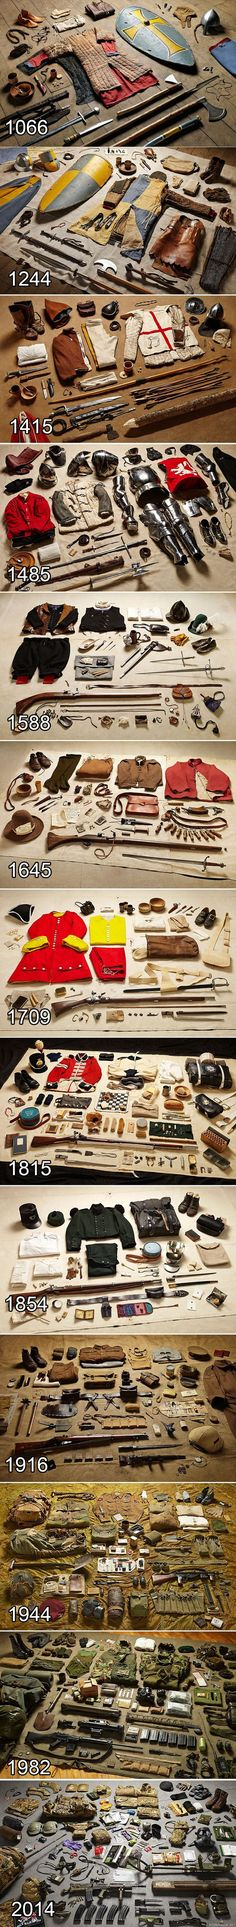 History Discover History of war uniforms in one image. Pretty cool quick visual reference: History of war uniforms in one image Medieval Combat, Armadura Medieval, Templer, Landsknecht, One Image, Military History, Military Gear, Military Equipment, Military Memes